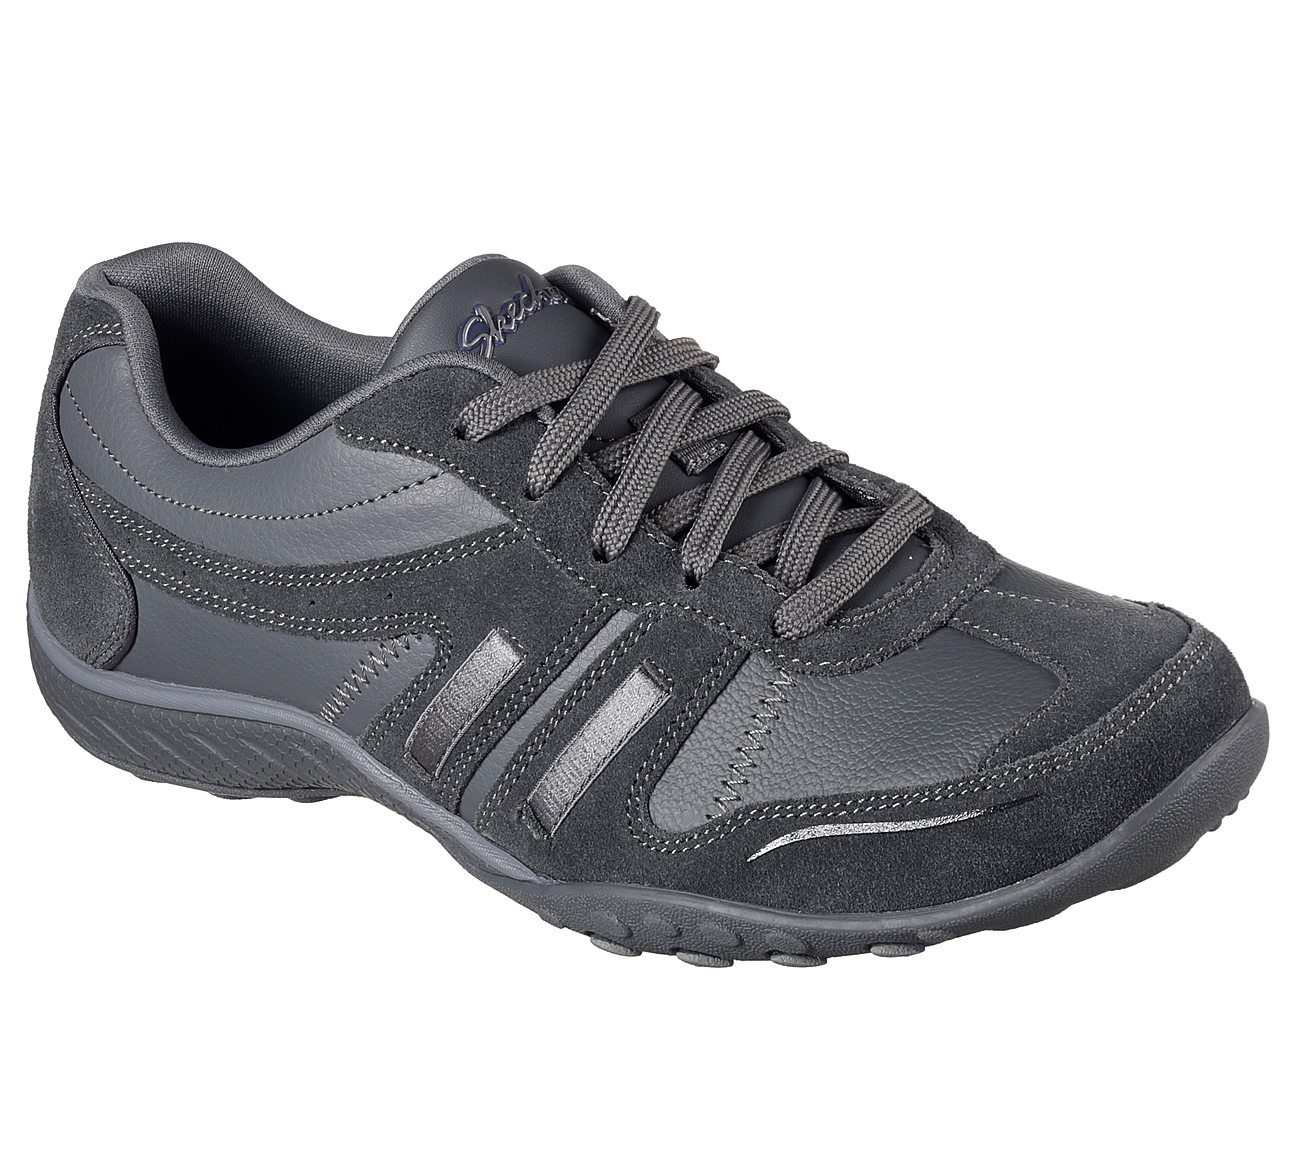 Womens Athletic Shoes skechers black breathe easy save the day mh0c66u5